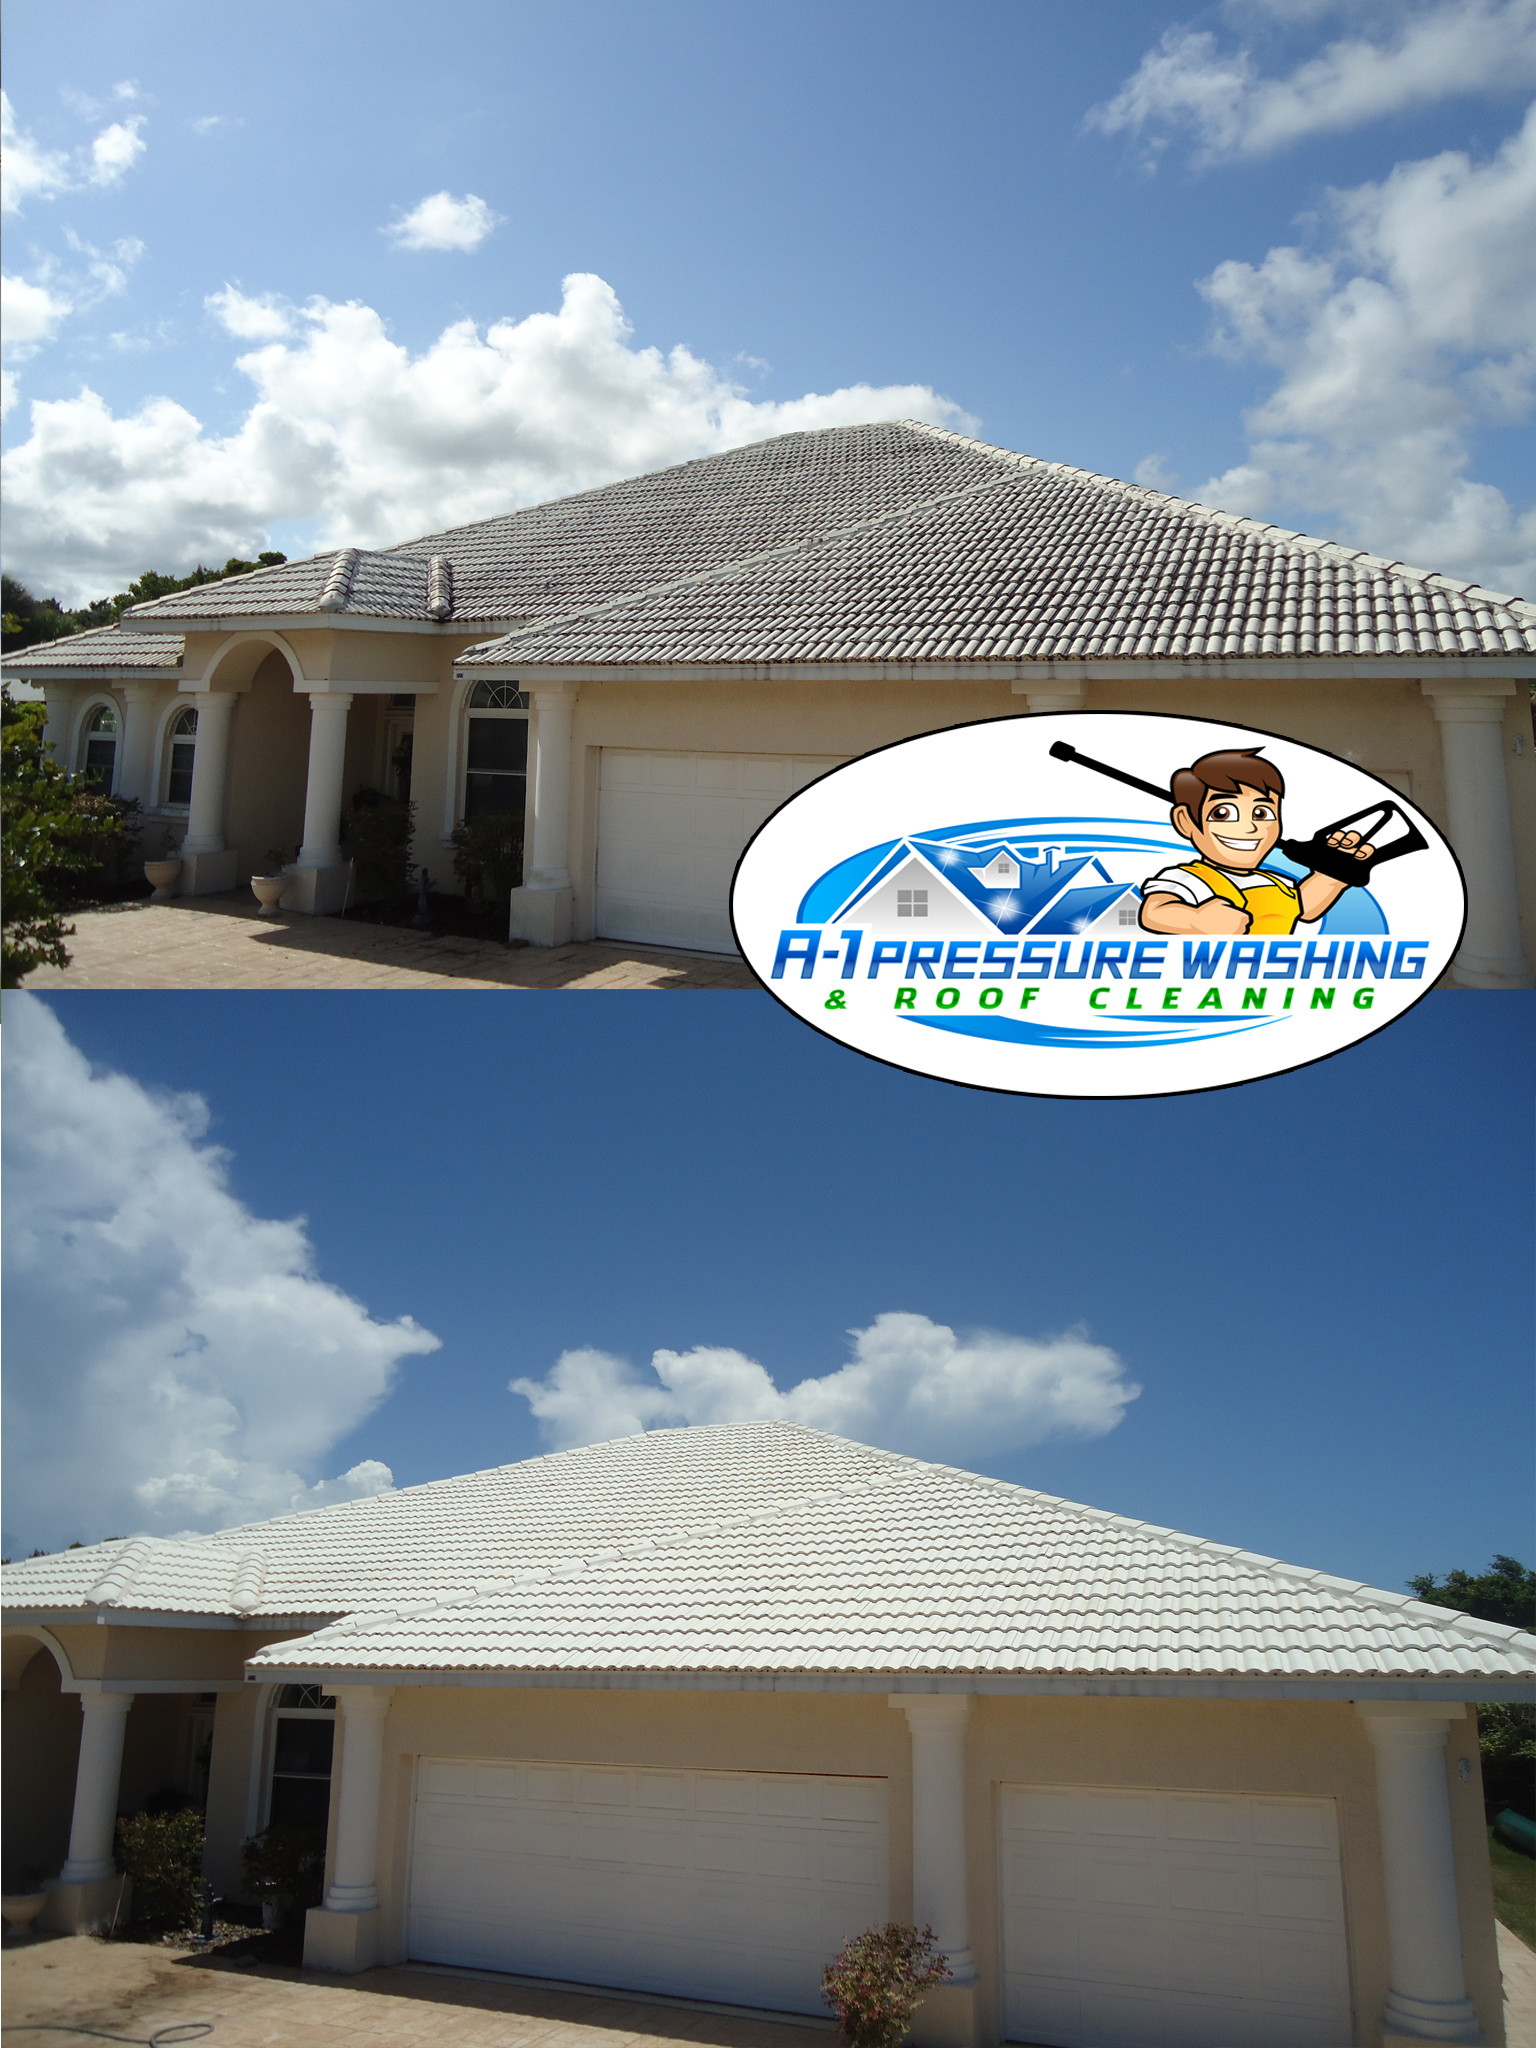 Photo Gallery A 1 Pressure Washing Amp Roof Cleaning